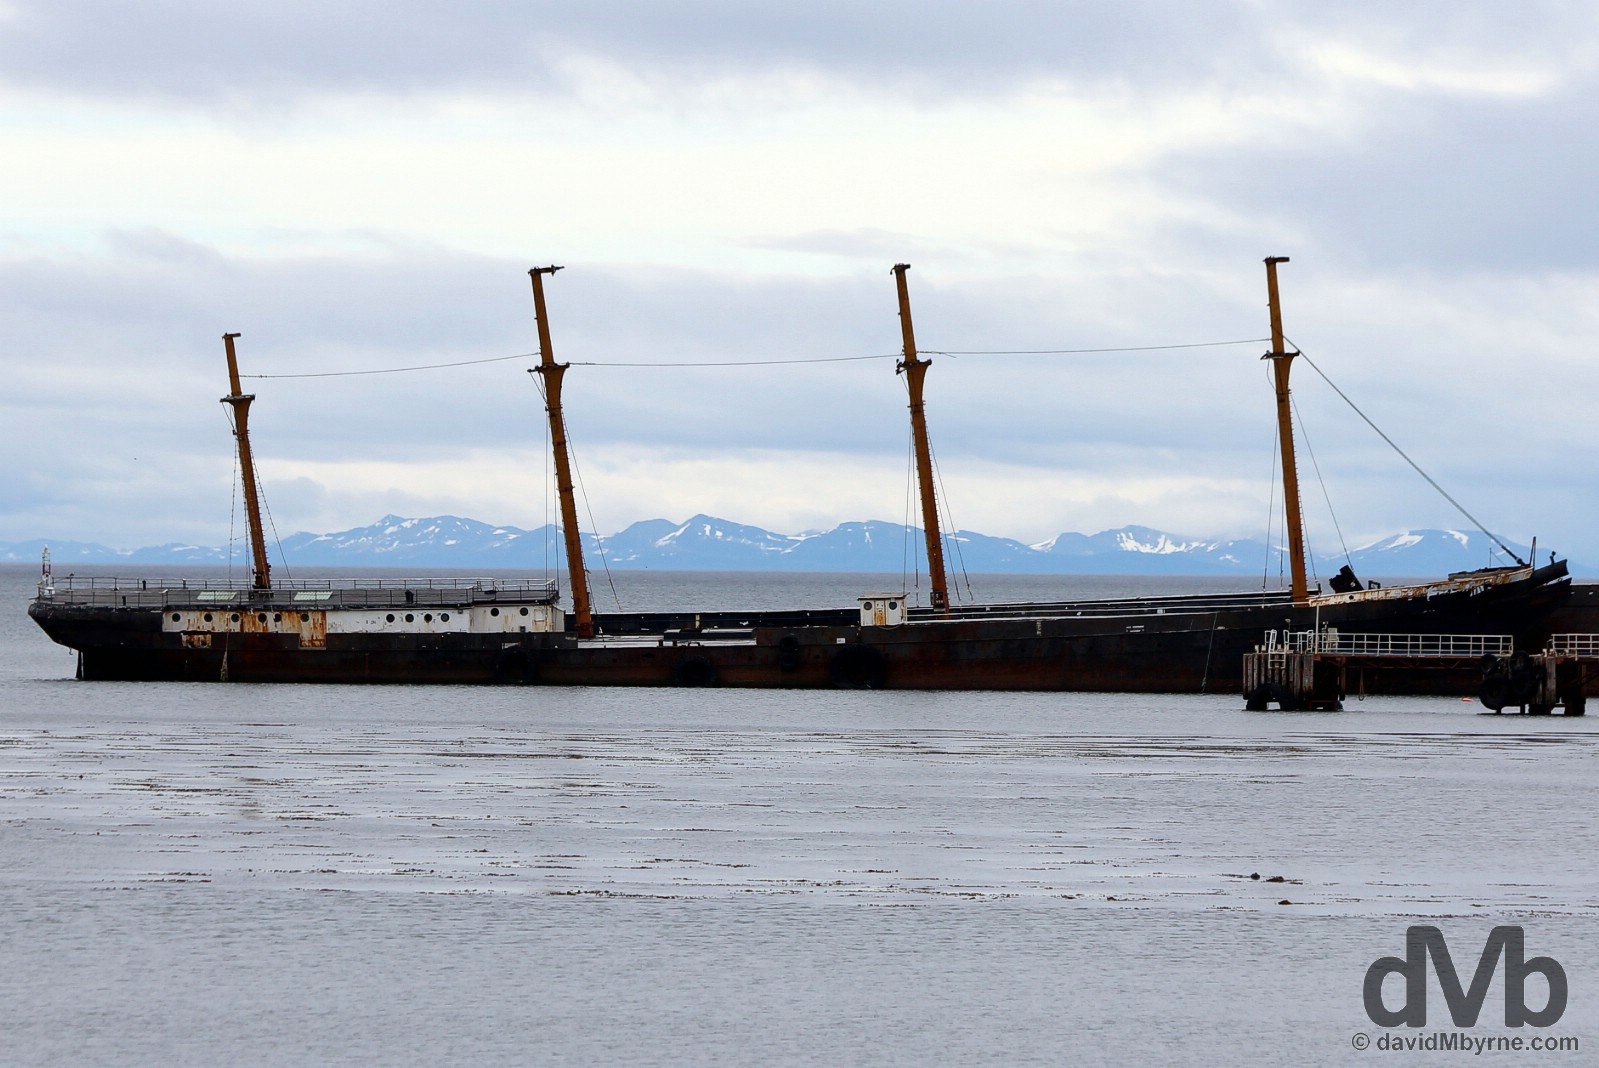 The wreck of the windjammer 'County of Peebles', world's first four-masted, iron-hulled full-rigged ship, now beached as a breakwater in Punta Arenas, Chile. November 10, 2015.